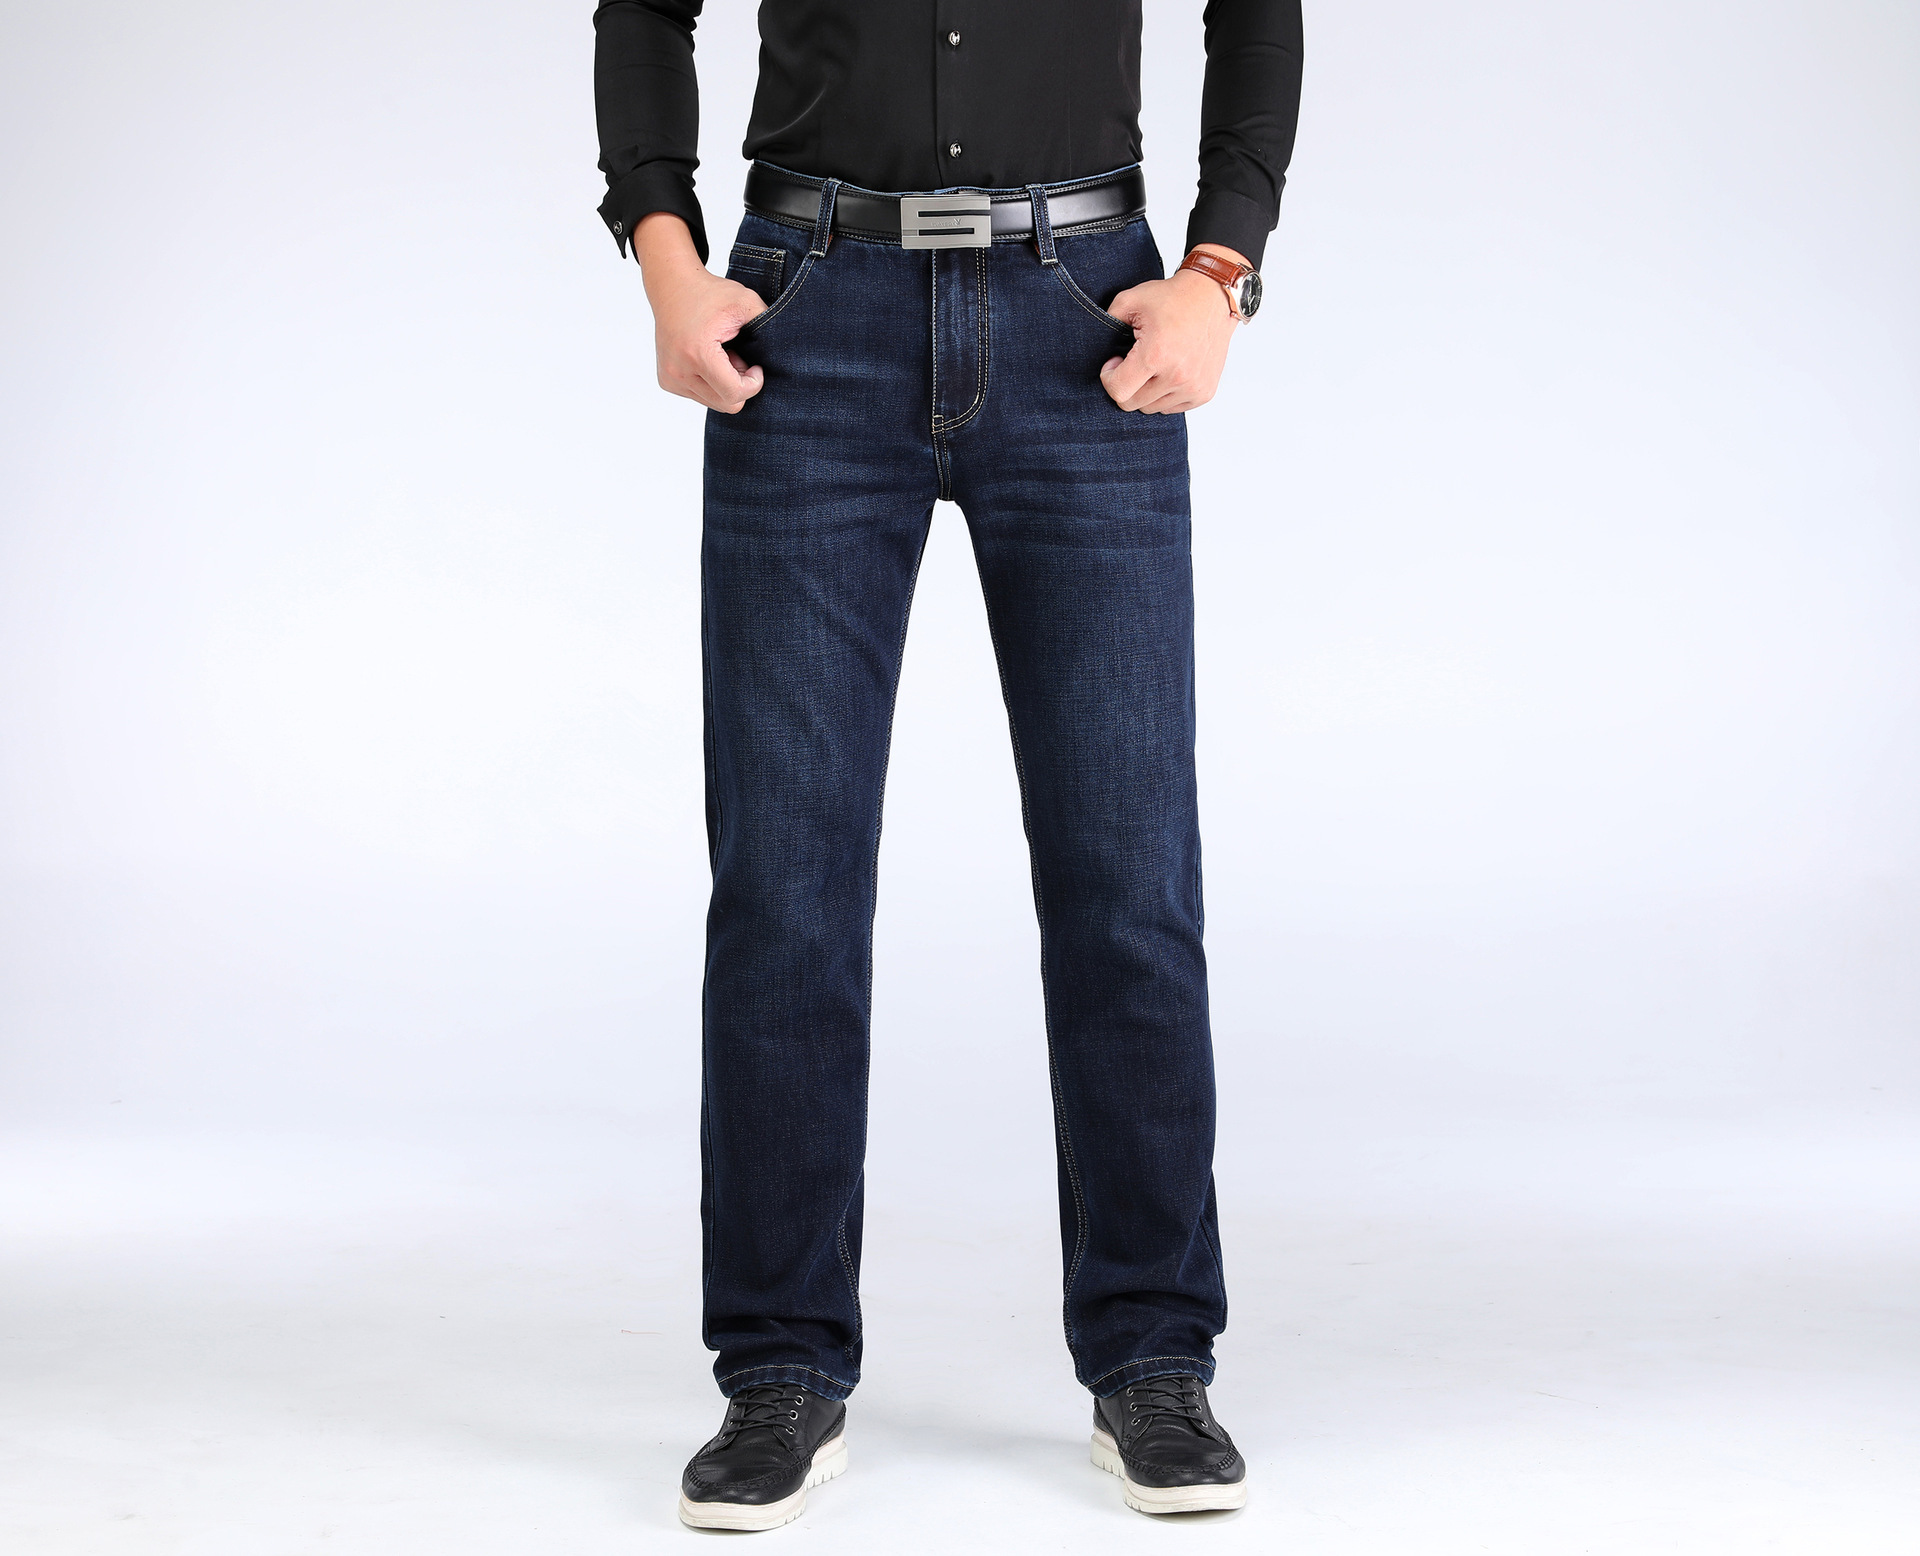 Men Autumn And Winter Stretch Denim Trousers Men'S Wear New Style Loose And Plus-sized Business Casual Pants MEN'S Trousers